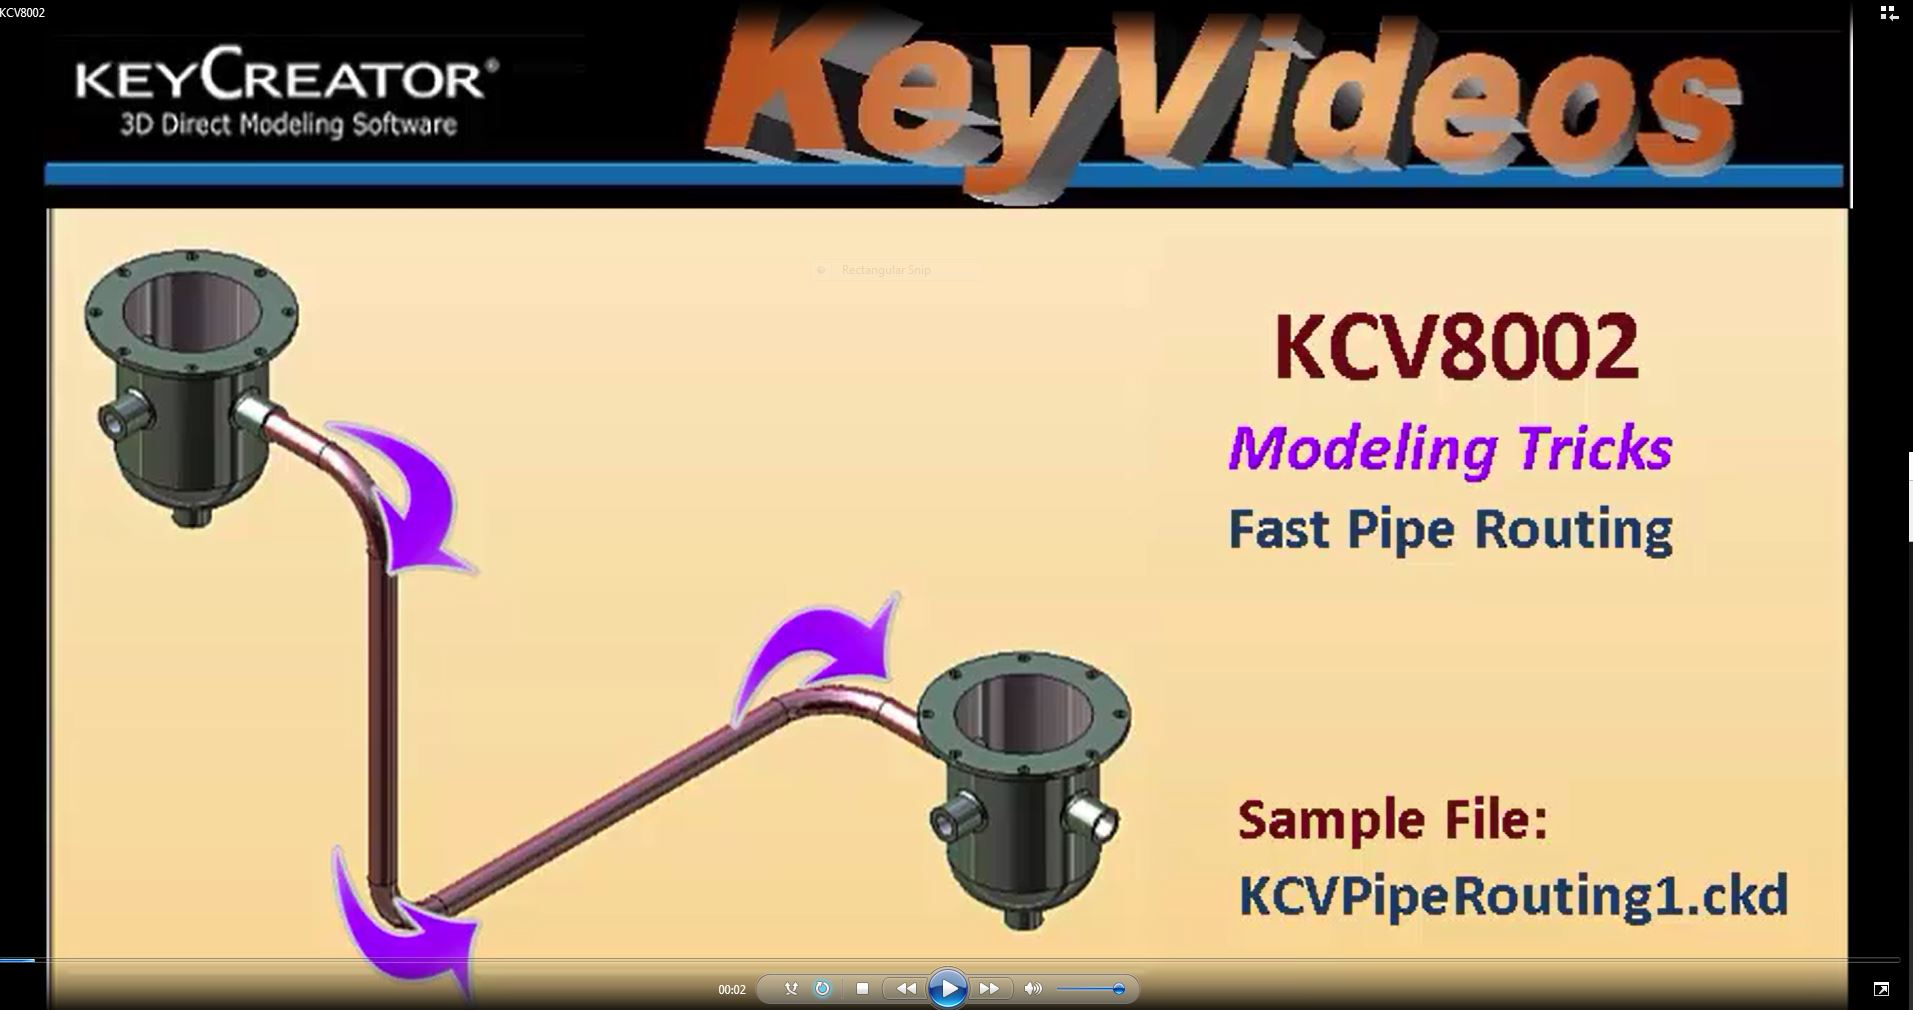 #TechTipTuesday: Modeling Trick- Fast Pipe Routing